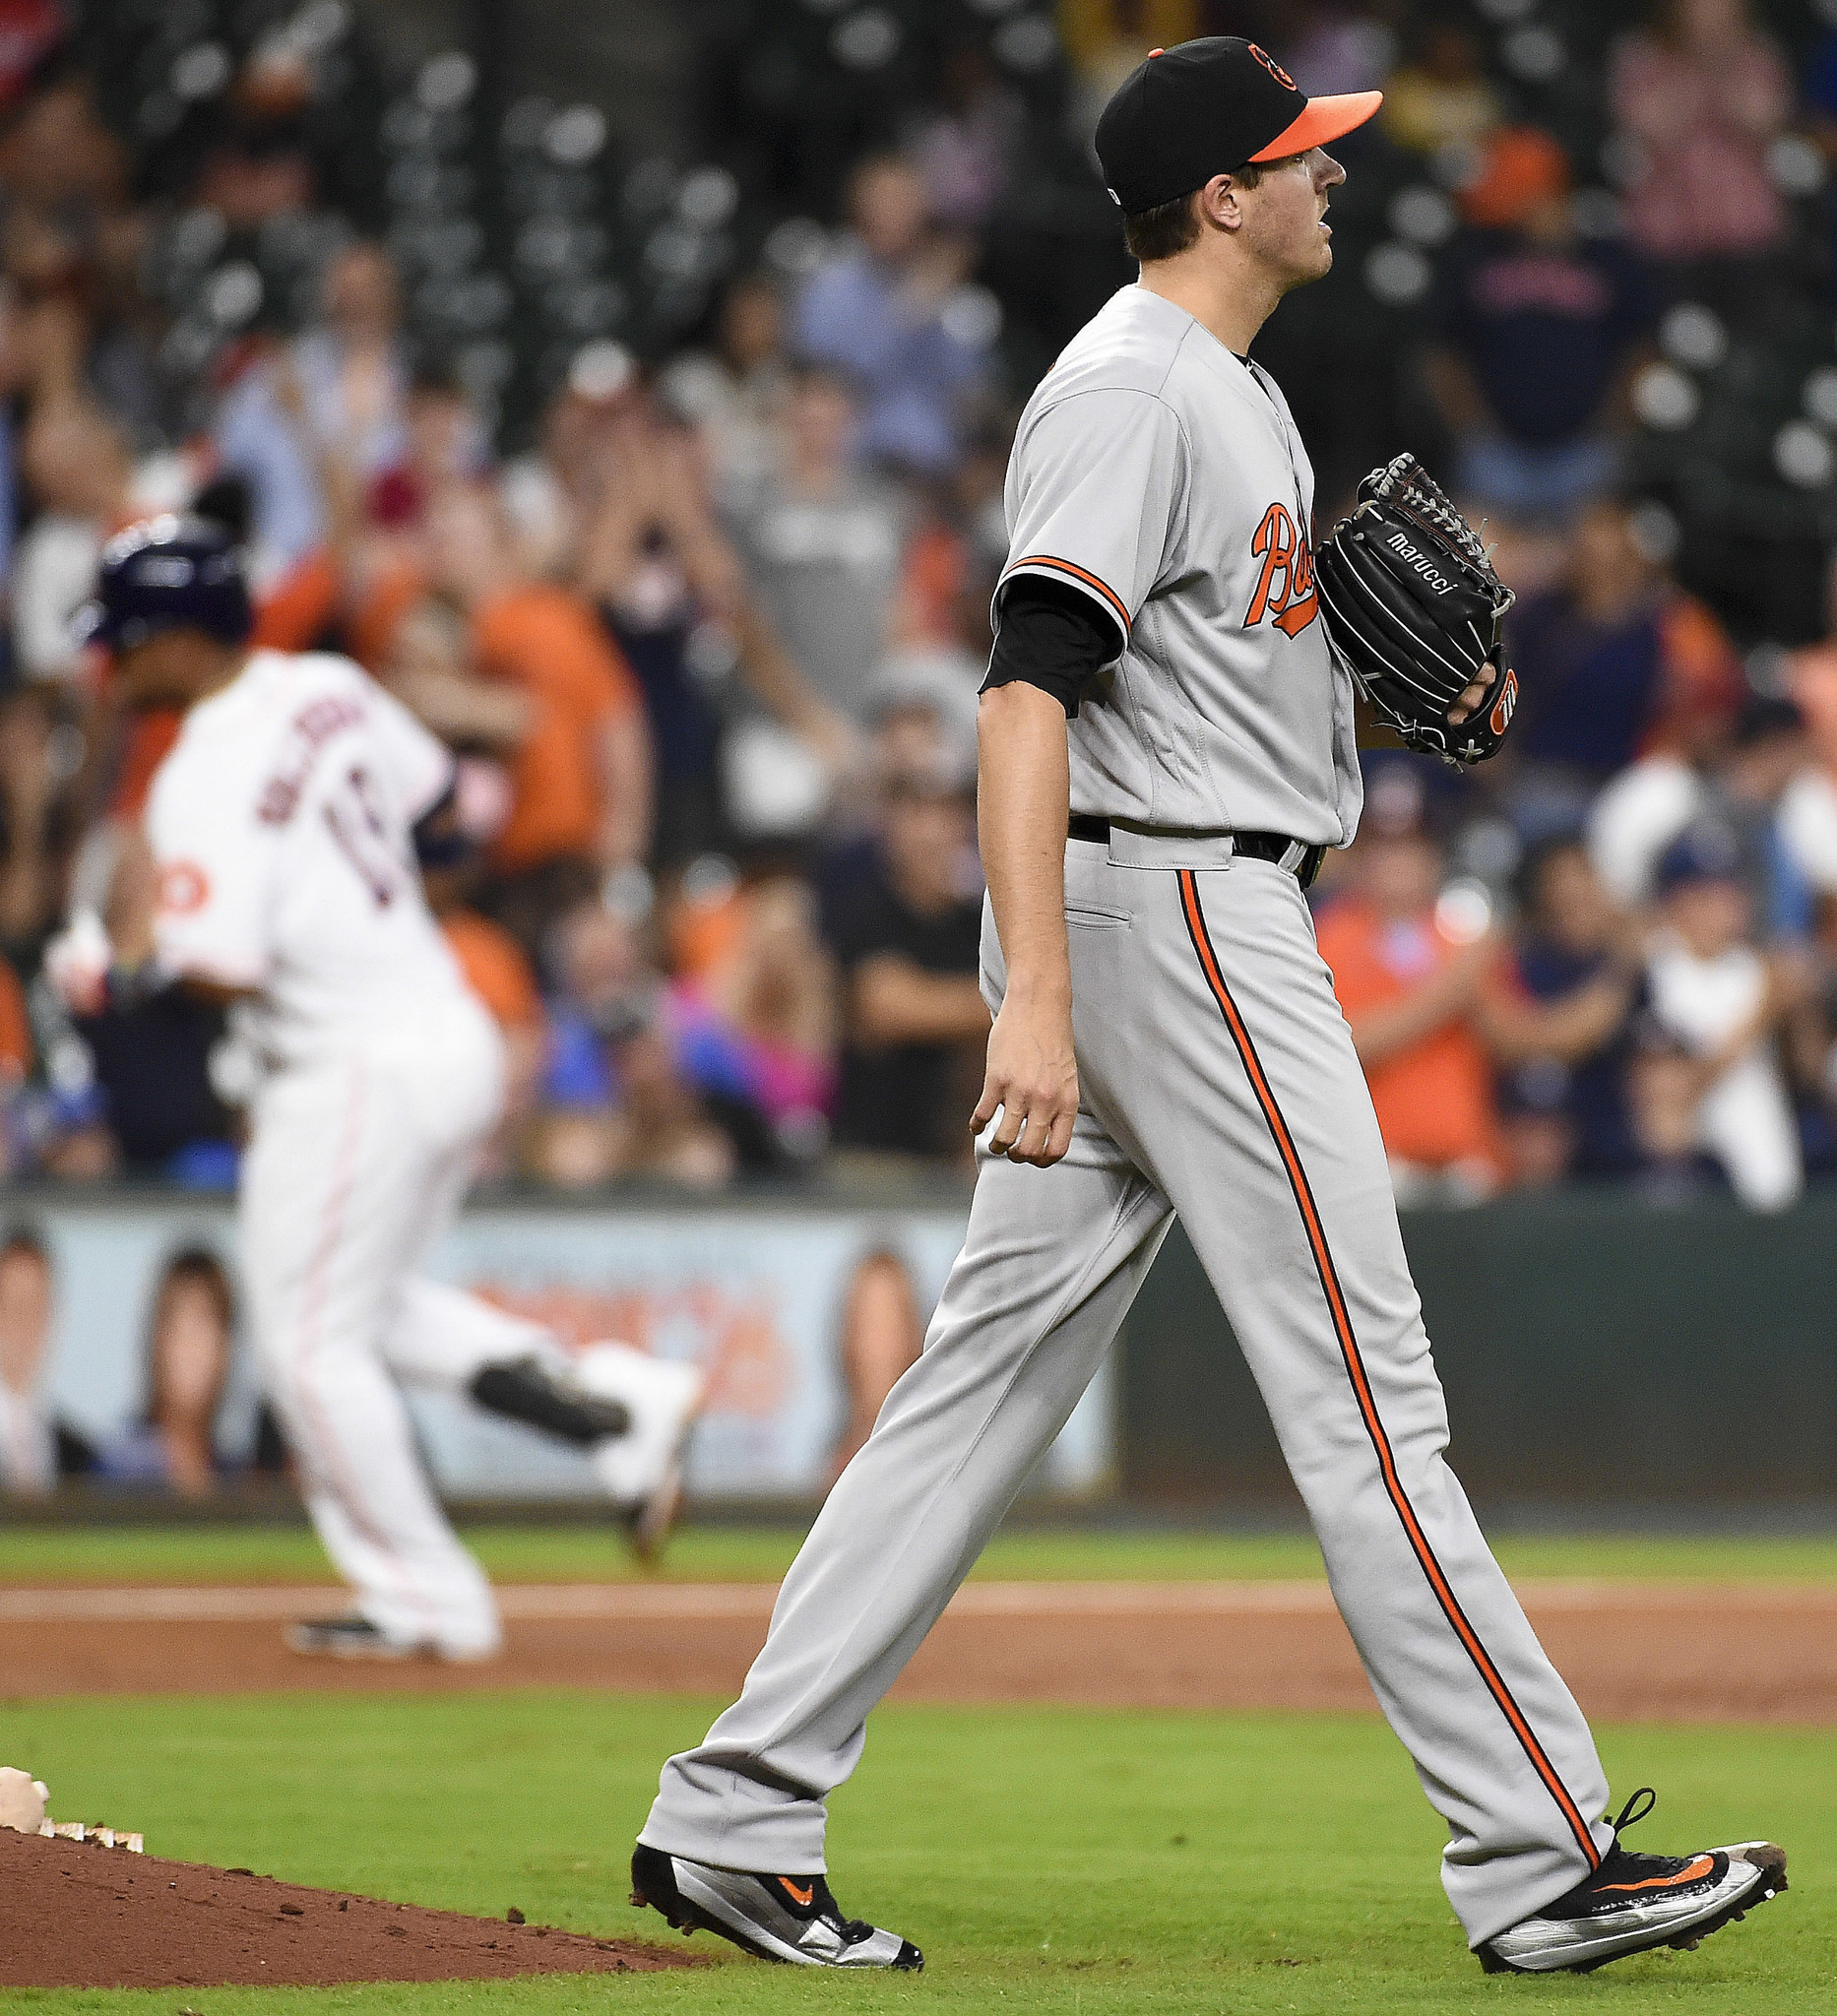 Bal-orioles-recap-birds-lose-4-2-to-astros-strike-out-record-52-times-in-three-game-sweep-20160526